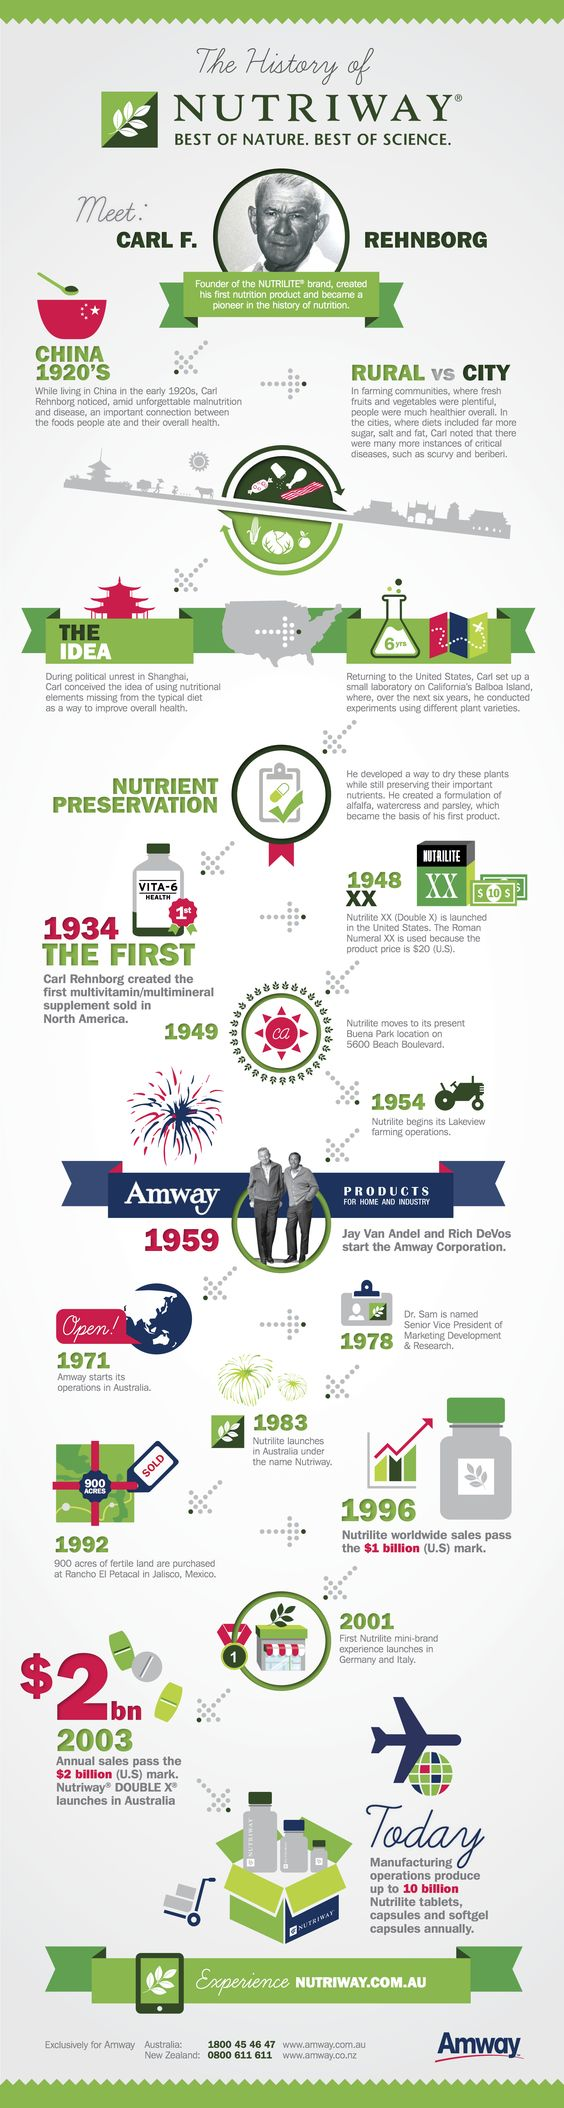 amway history More than 3 million people around the world earn extra income for themselves and their families as amway business owners (abos) since 1959, amway has paid out more bonuses and cash incentives to its distributors worldwide than any other direct sales company in history.